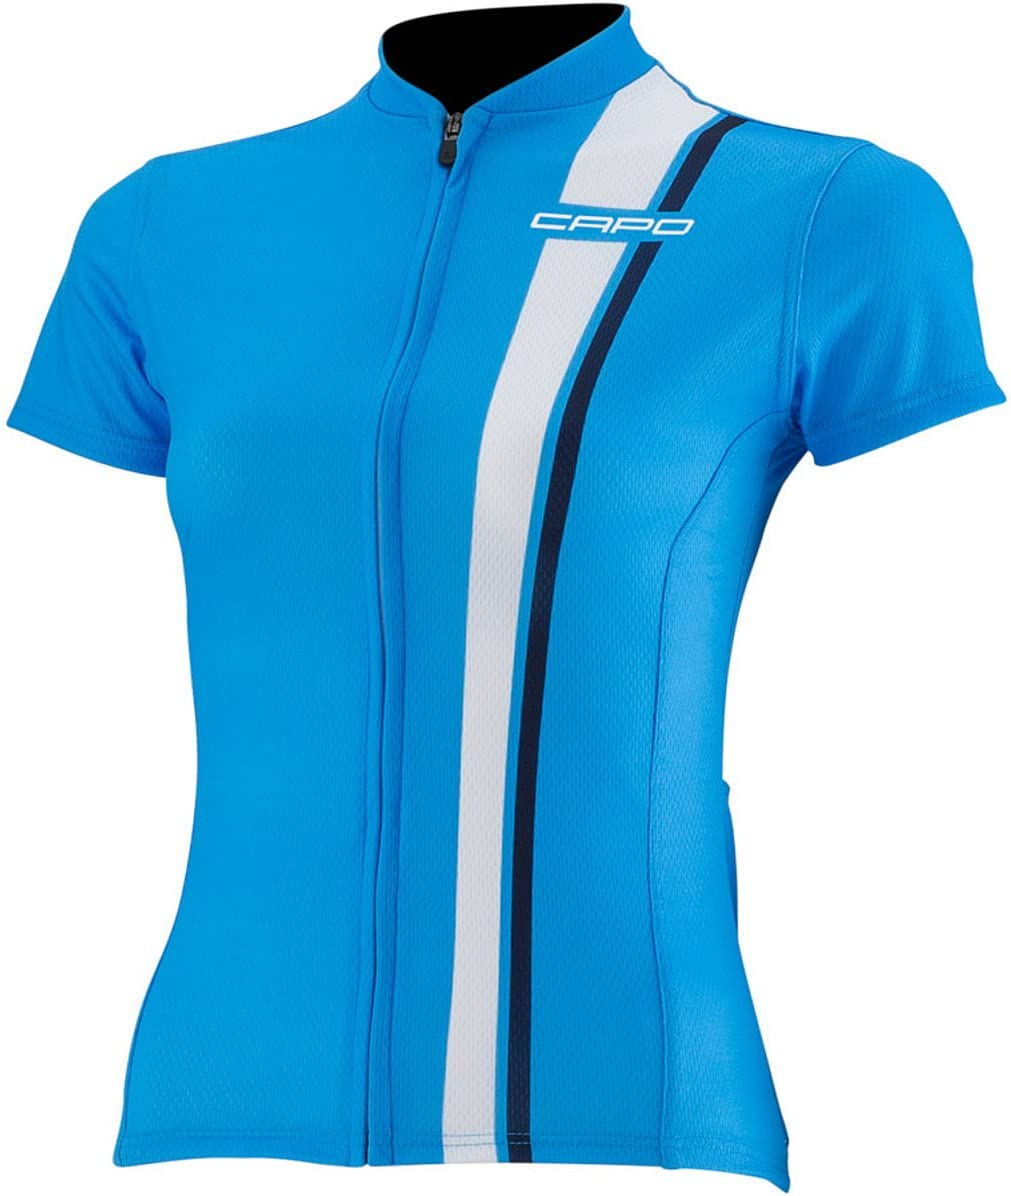 Capo Modena Donna Jersey Womens Clothing Women prb.org.af